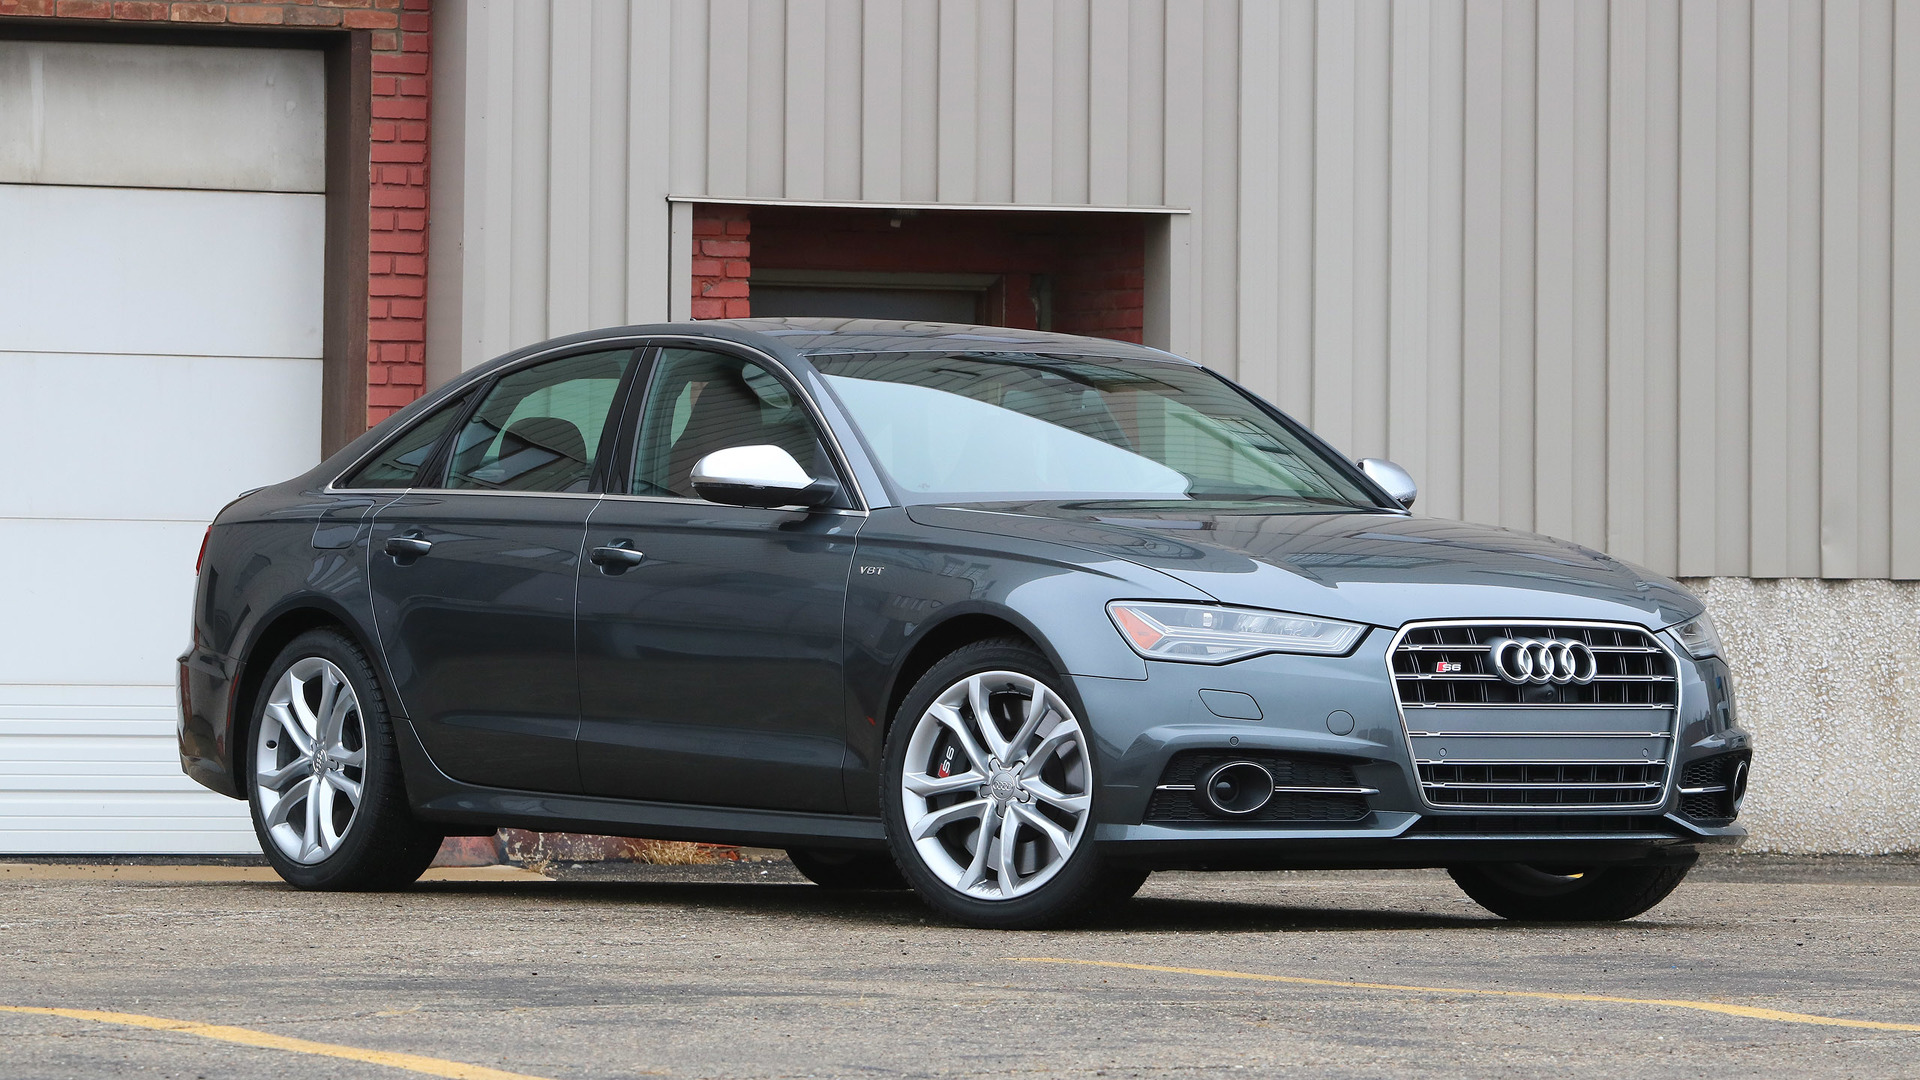 Audi S6 0 60 >> 2017 Audi S6 Review: Devour freeways without breaking a sweat